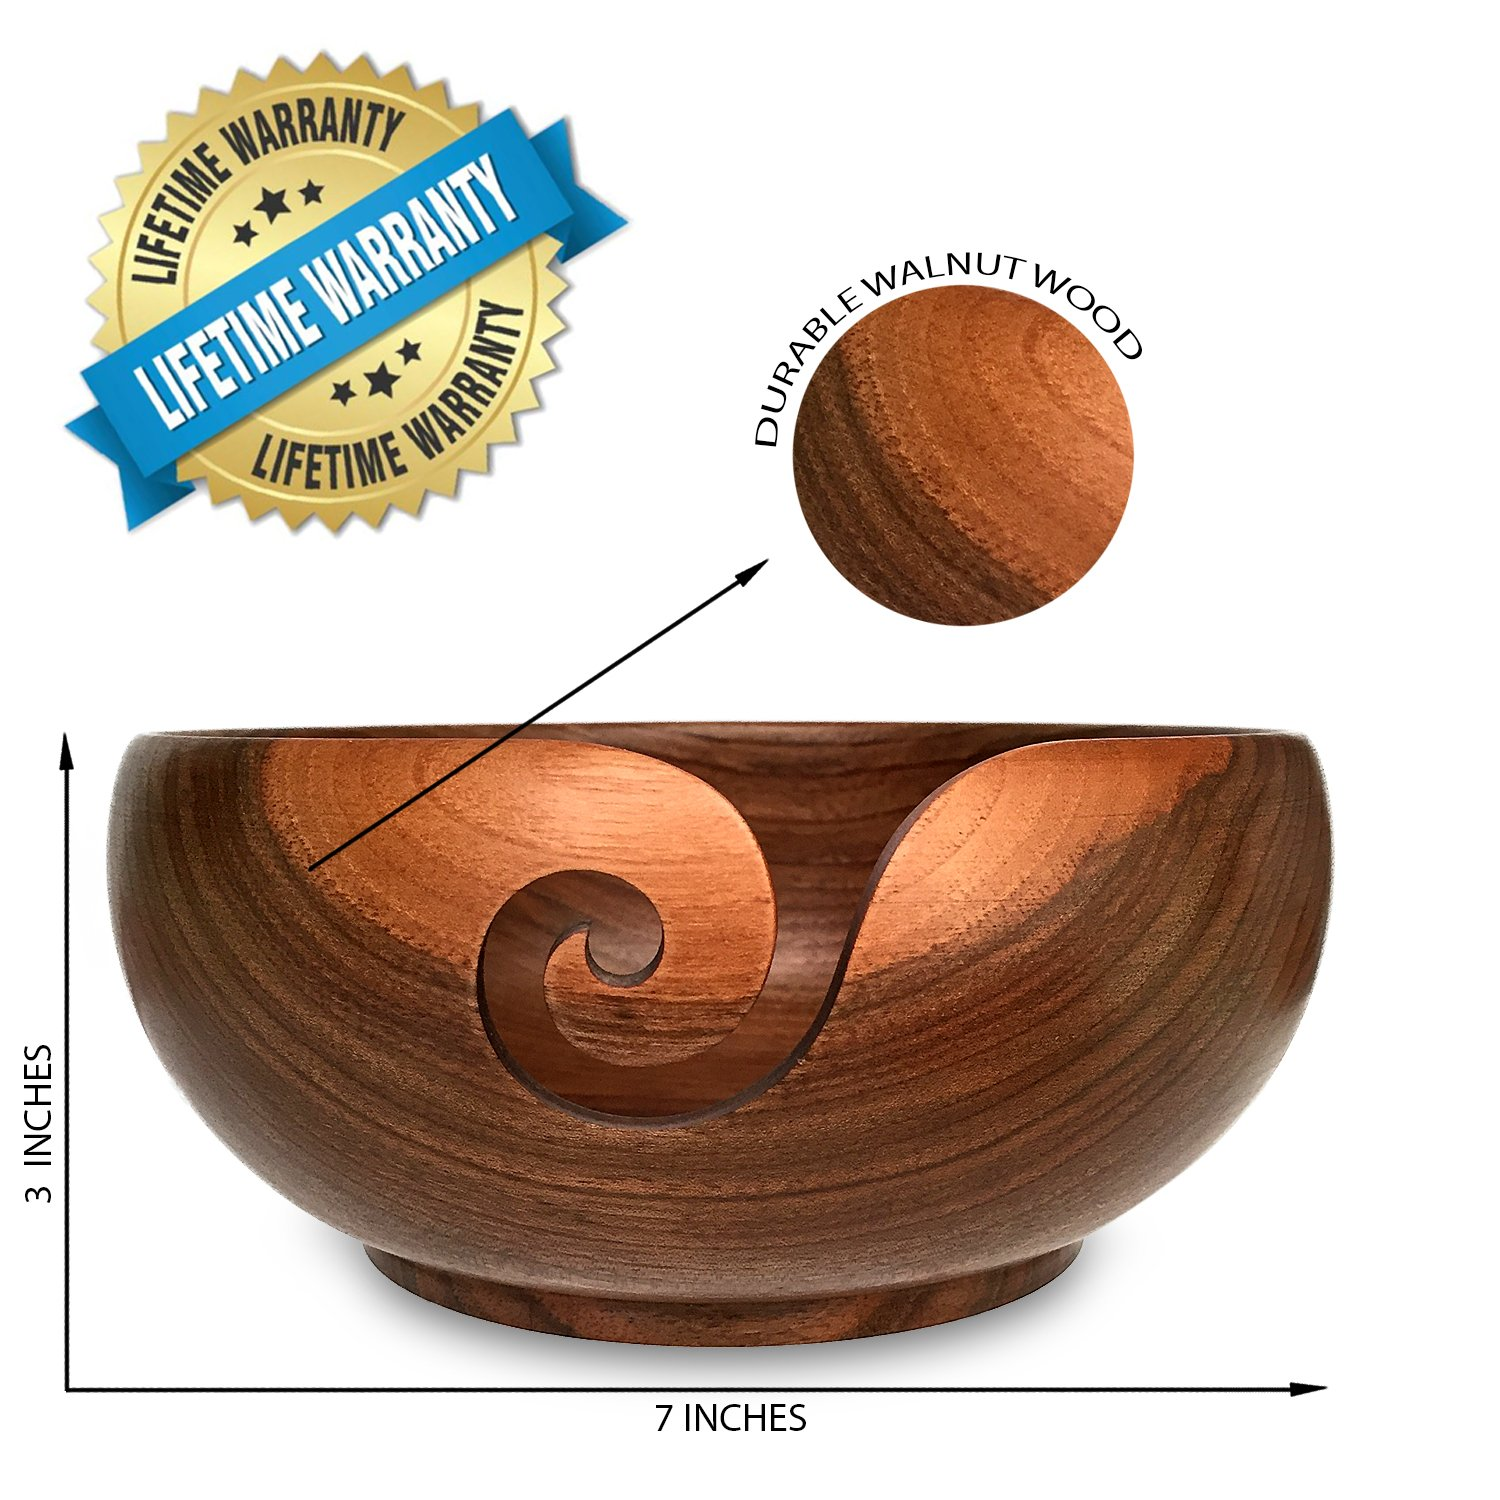 Yarn Bowl Walnut and Knitting Bag Bundle - 7''X3'', Wooden, Handmade from Special European Walnut Wood - Storage Organizer, Holder for Knitting and Crochet by Yarn Story- Perfect Gift! by YARN STORY (Image #3)